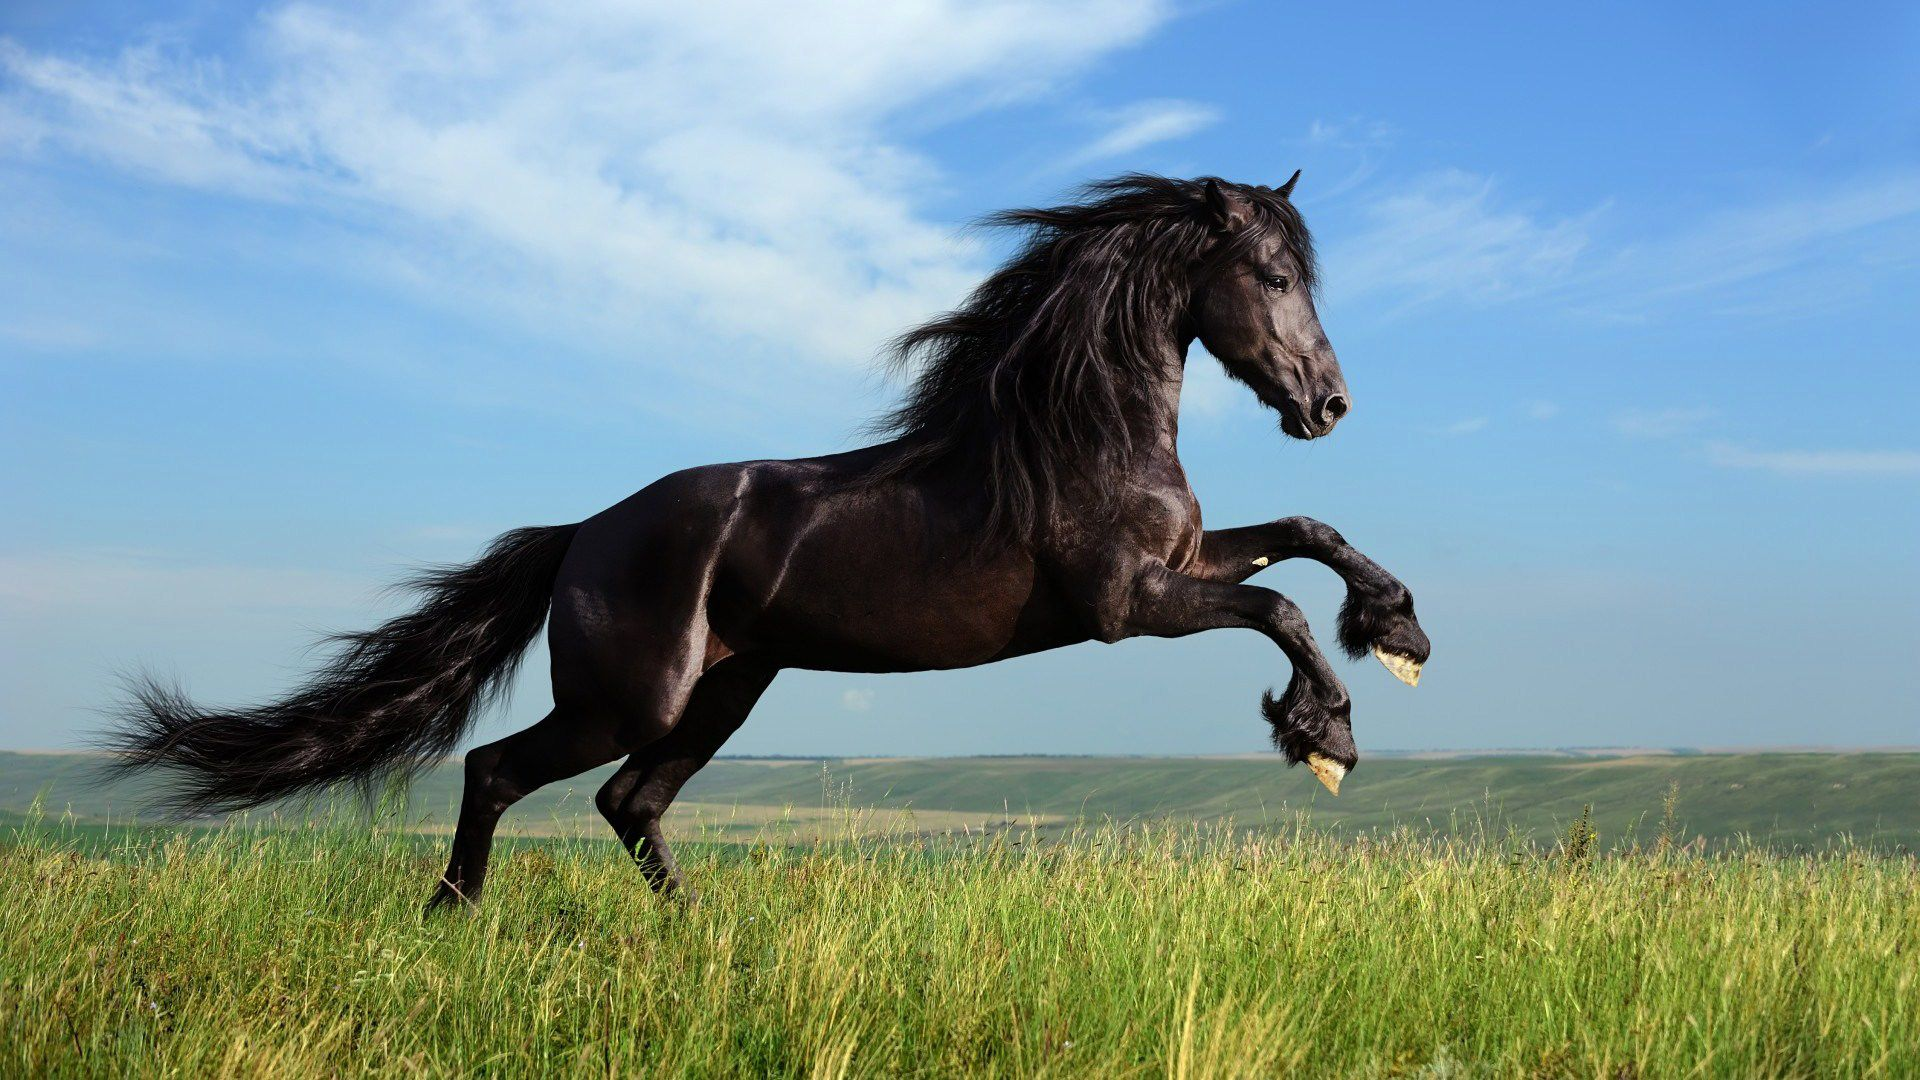 Wonderful Wallpaper Horse High Quality - 93fa1c497d00cfbbfbadf7a4c00c2b76  Trends_289514.jpg